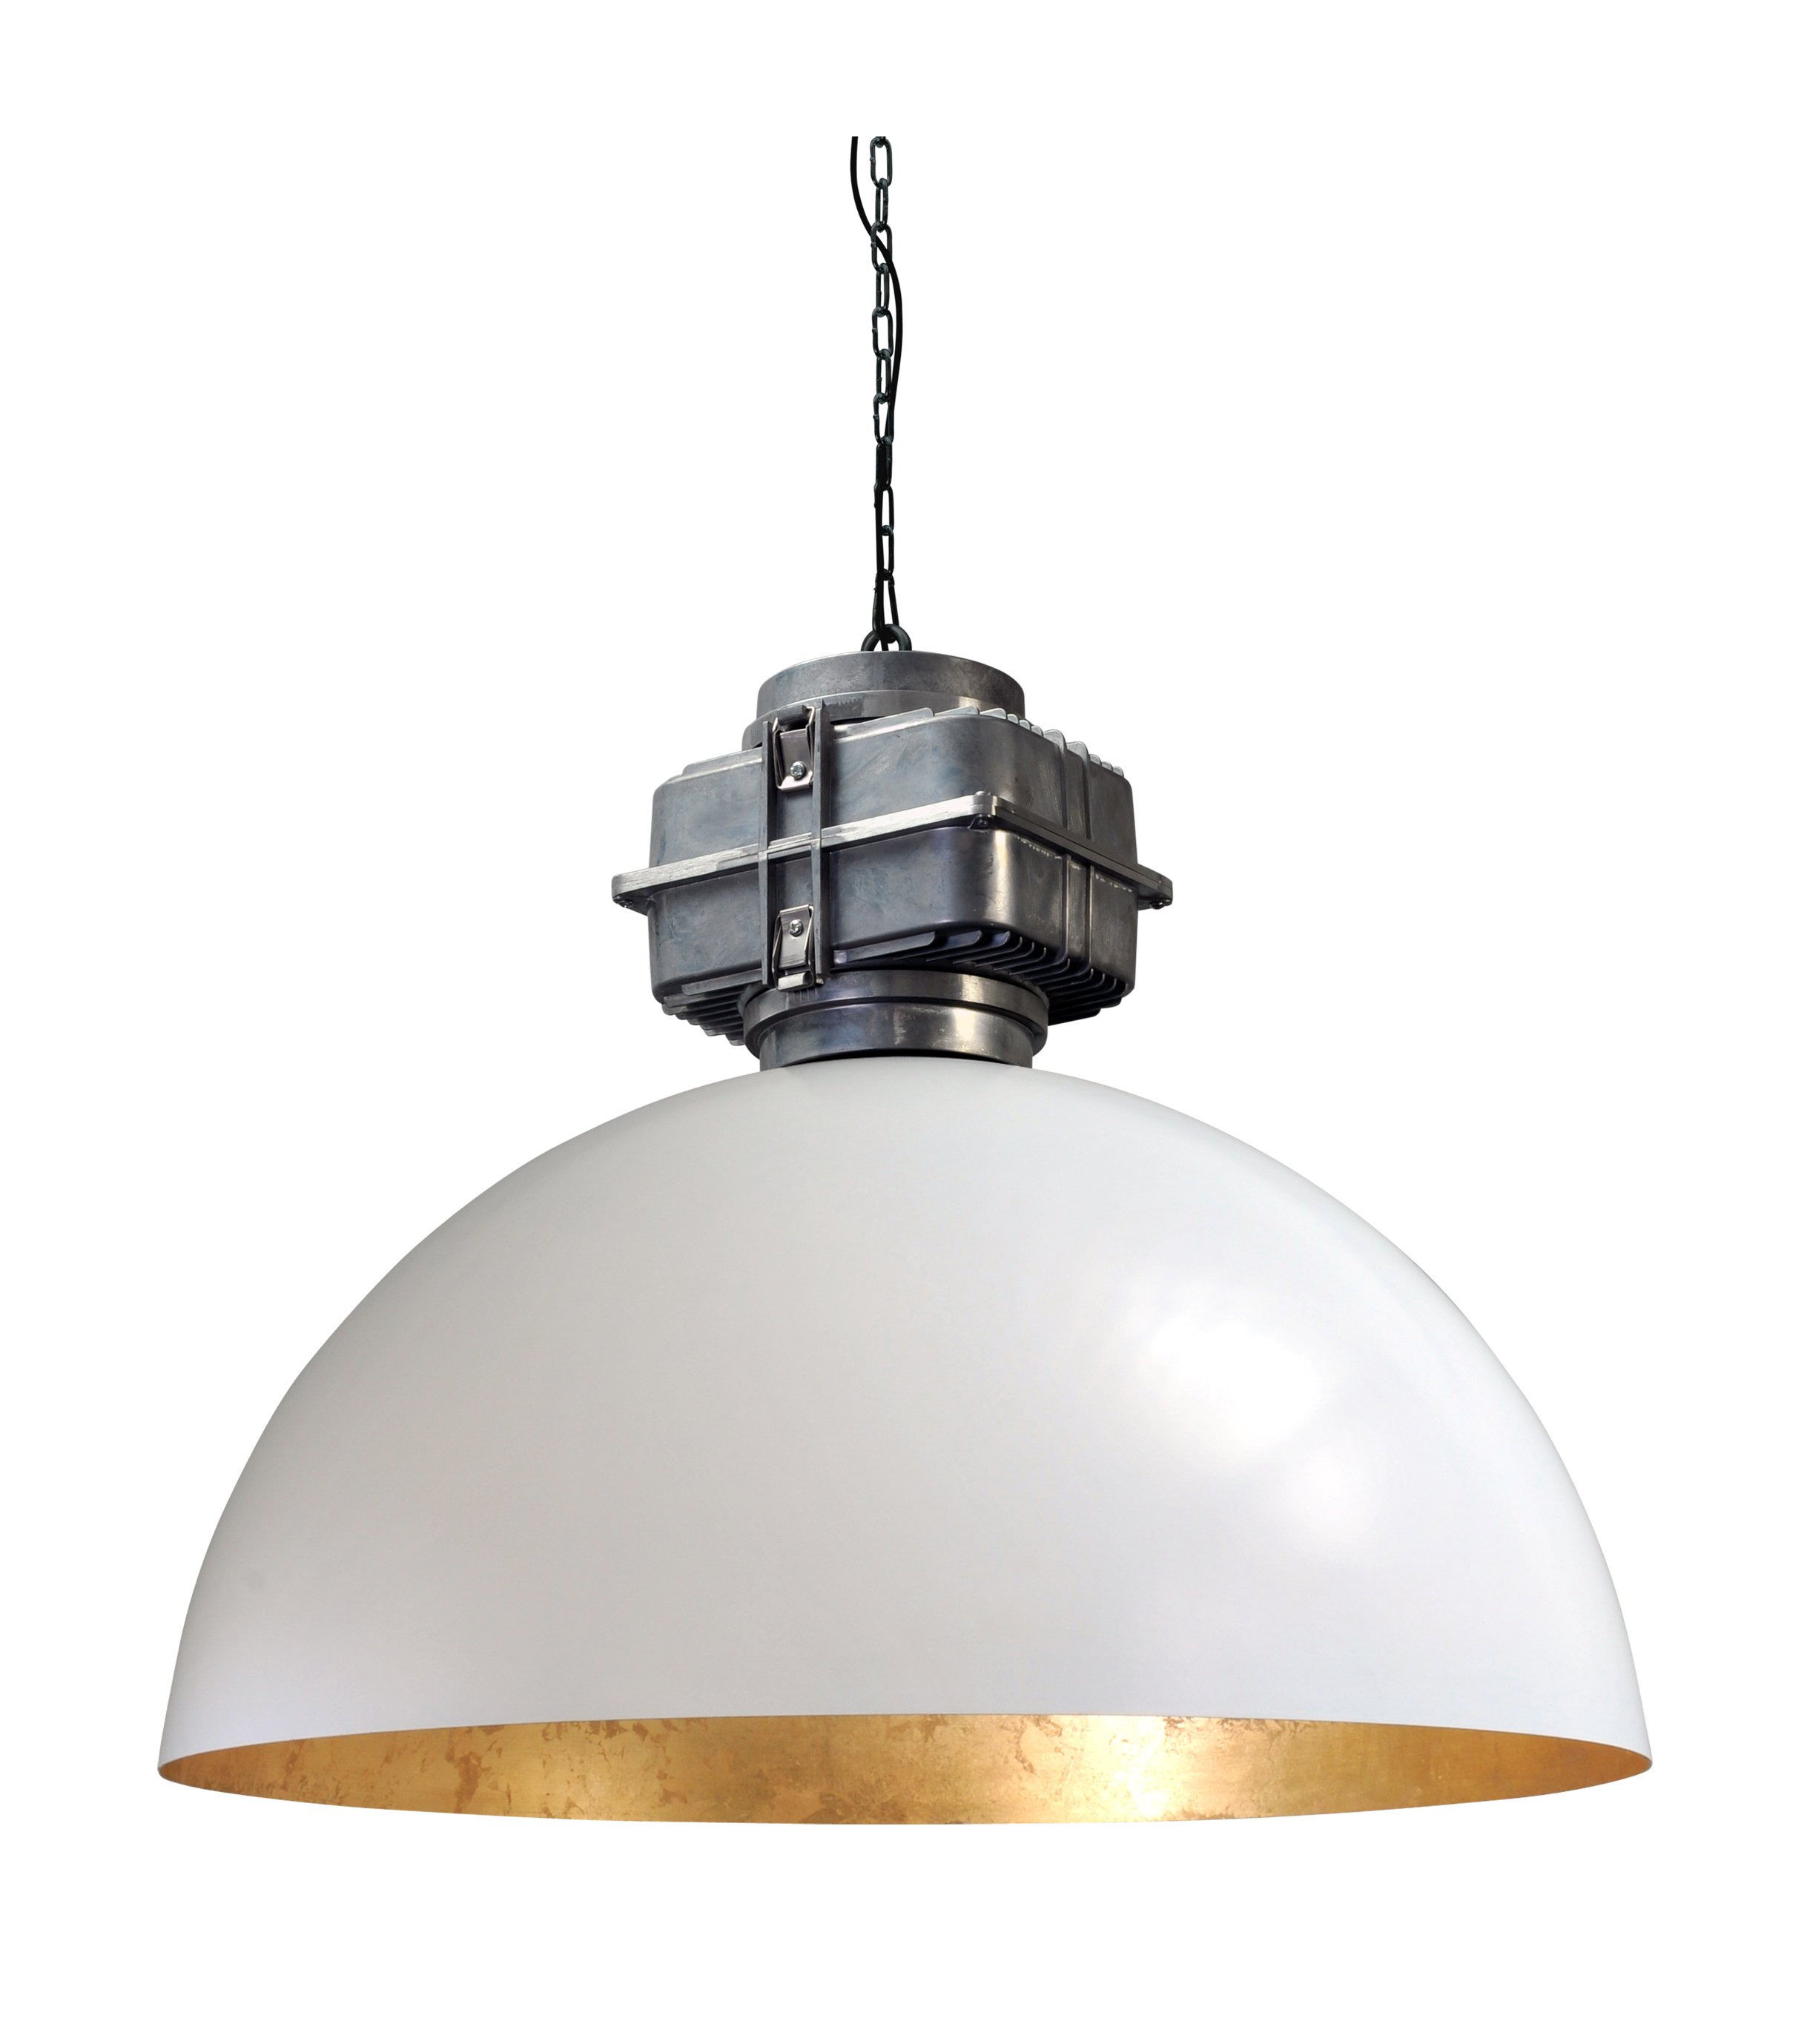 Masterlight Retro industrie hanglamp Industria Gold 80 Masterlight 2201-06-08-BL